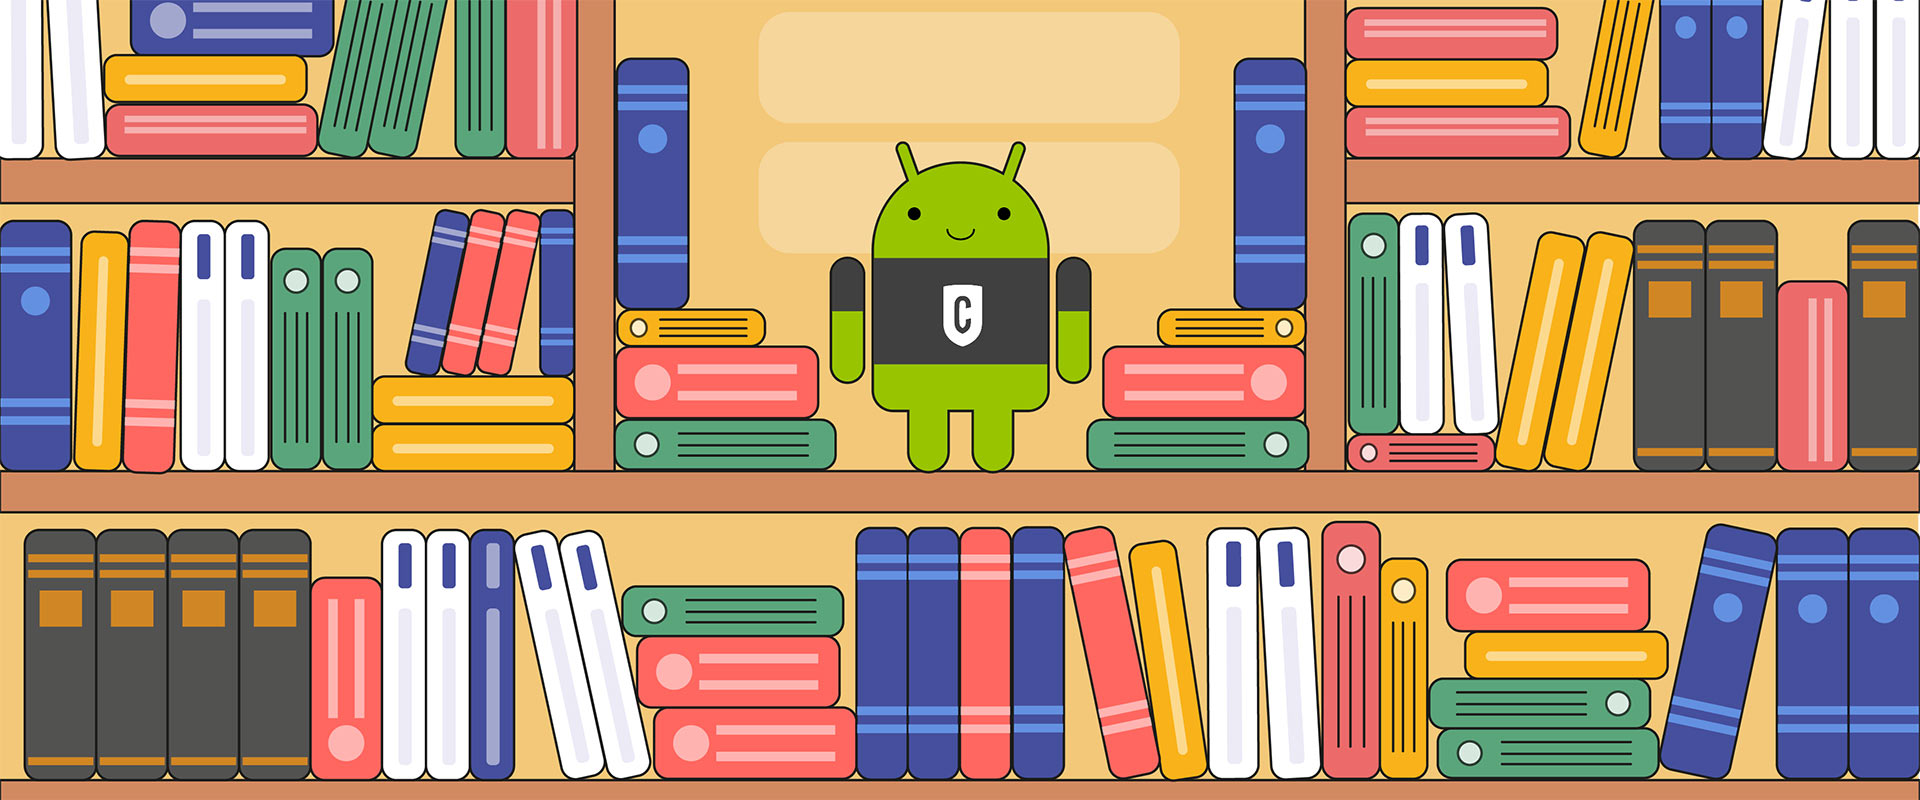 Taming File Storage on Android — Part 1